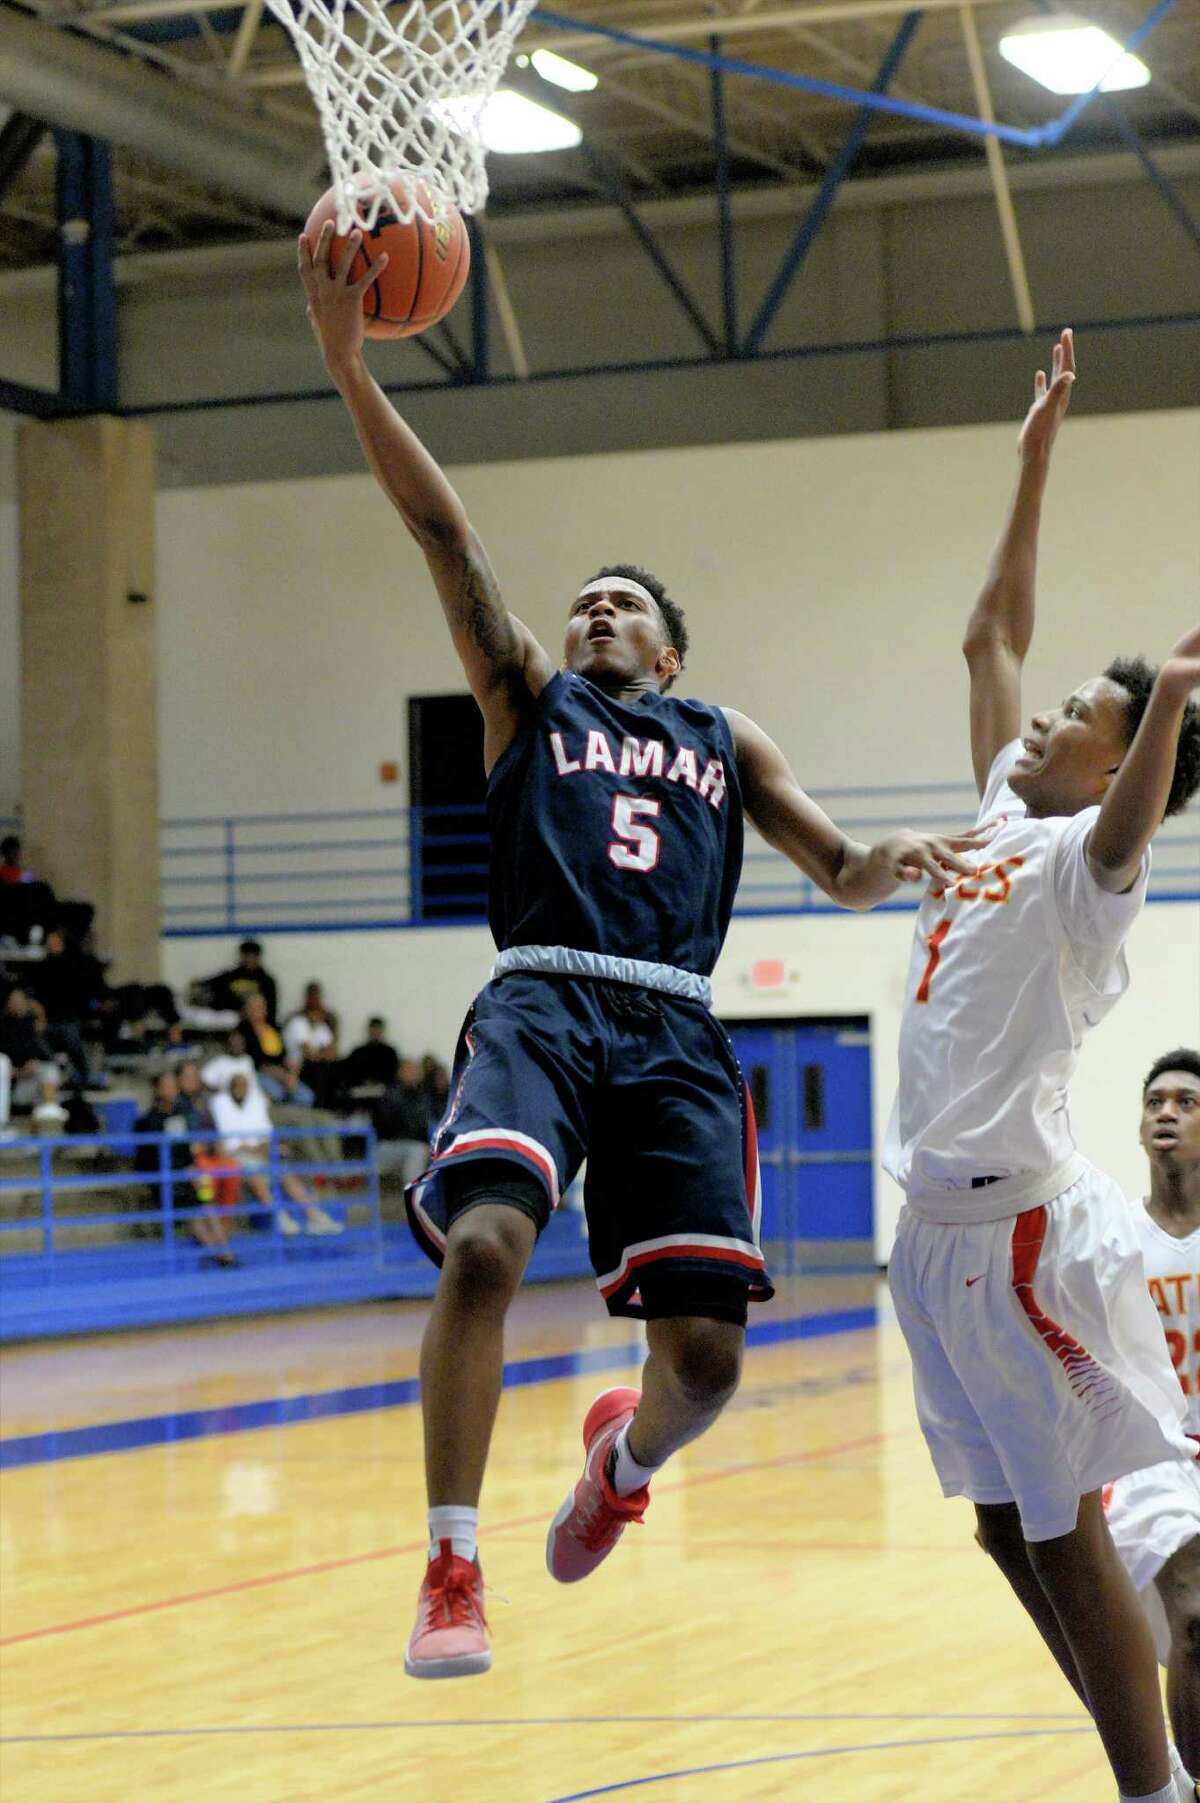 Tamir Bynum (5) of Lamar drives to the hoop during the first half of a boys basketball game between the Lamar Texans and the Yates Lions at the Houston ISD Tournament on Saturday December 17, 2016 at The Pavilion, Houston, TX.